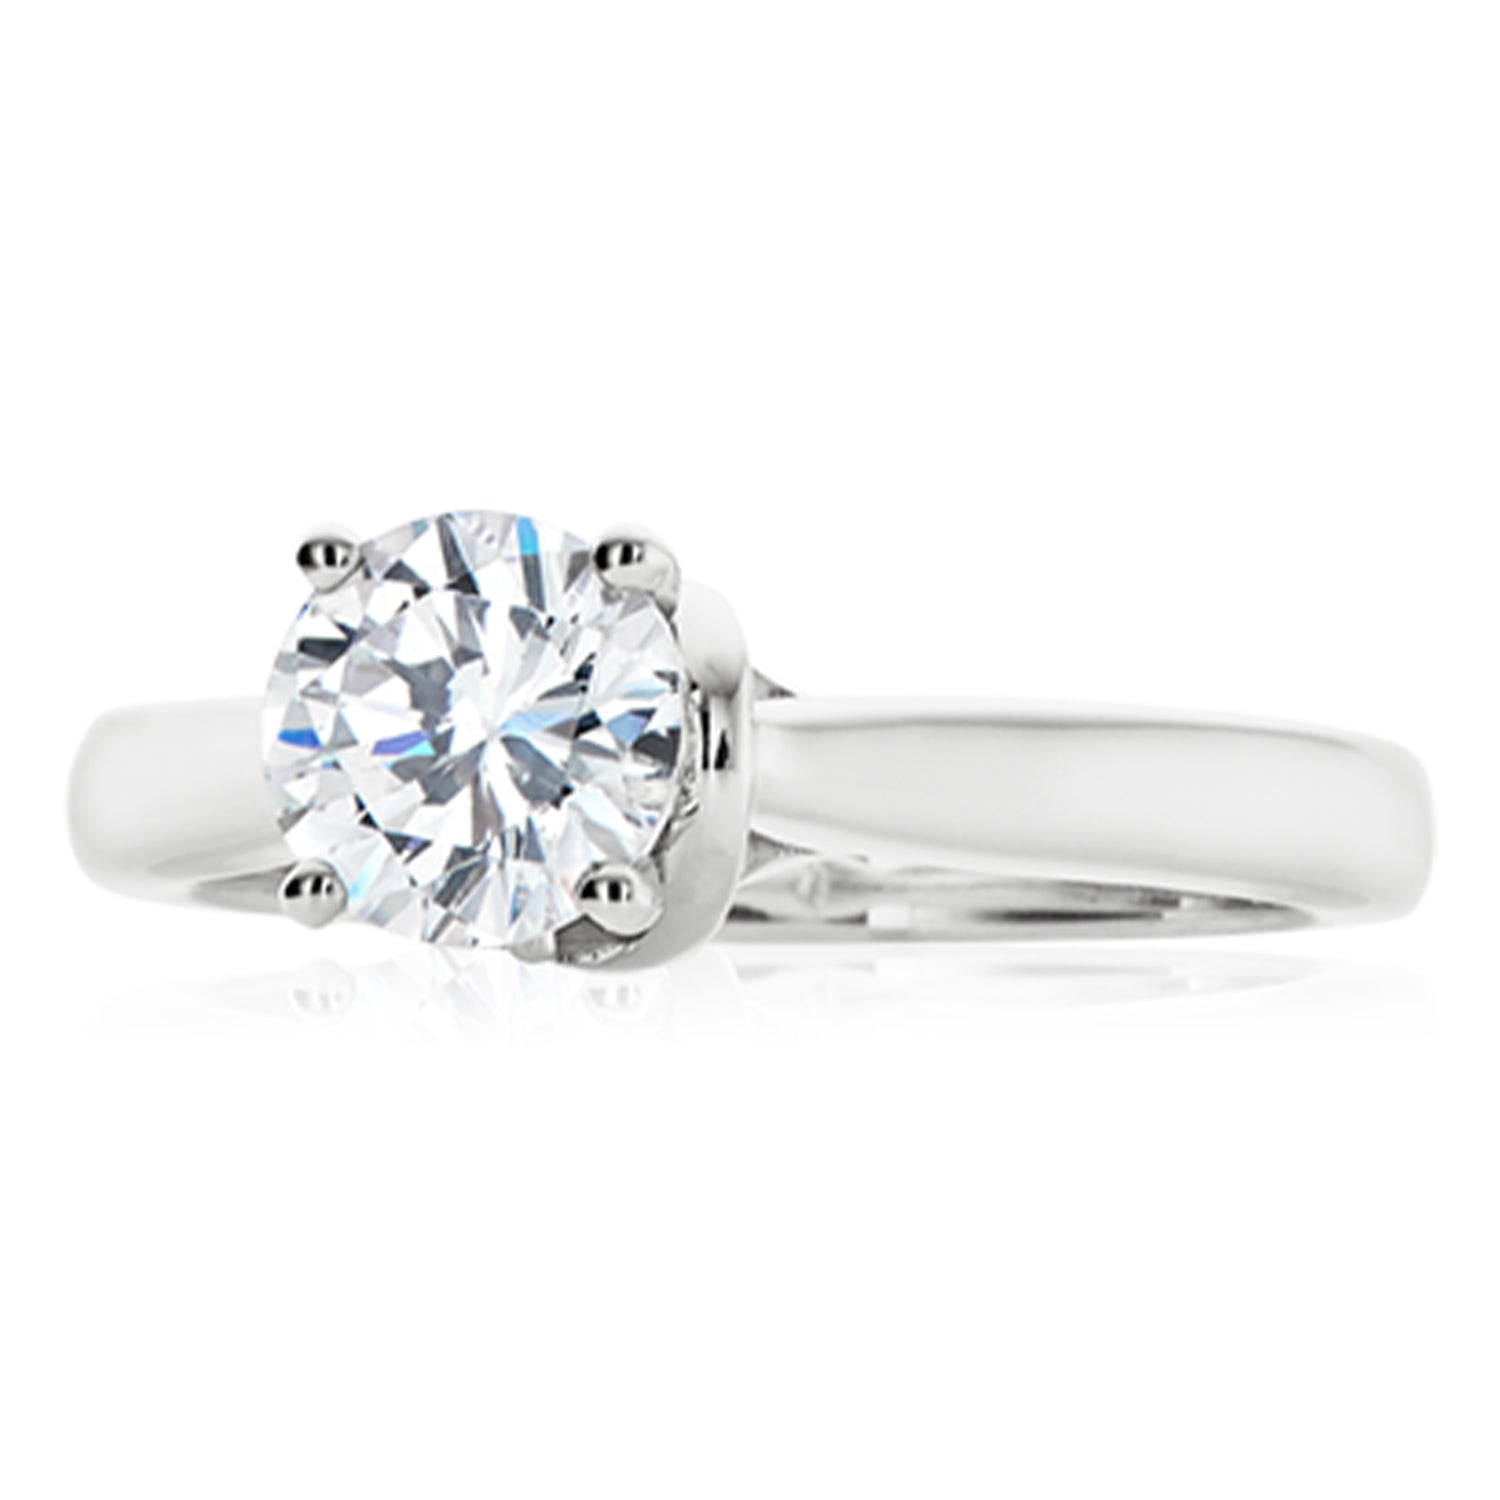 Vera Wang Love 18ct White Gold Round Brilliant Cut with 0.70 CARAT of Diamonds